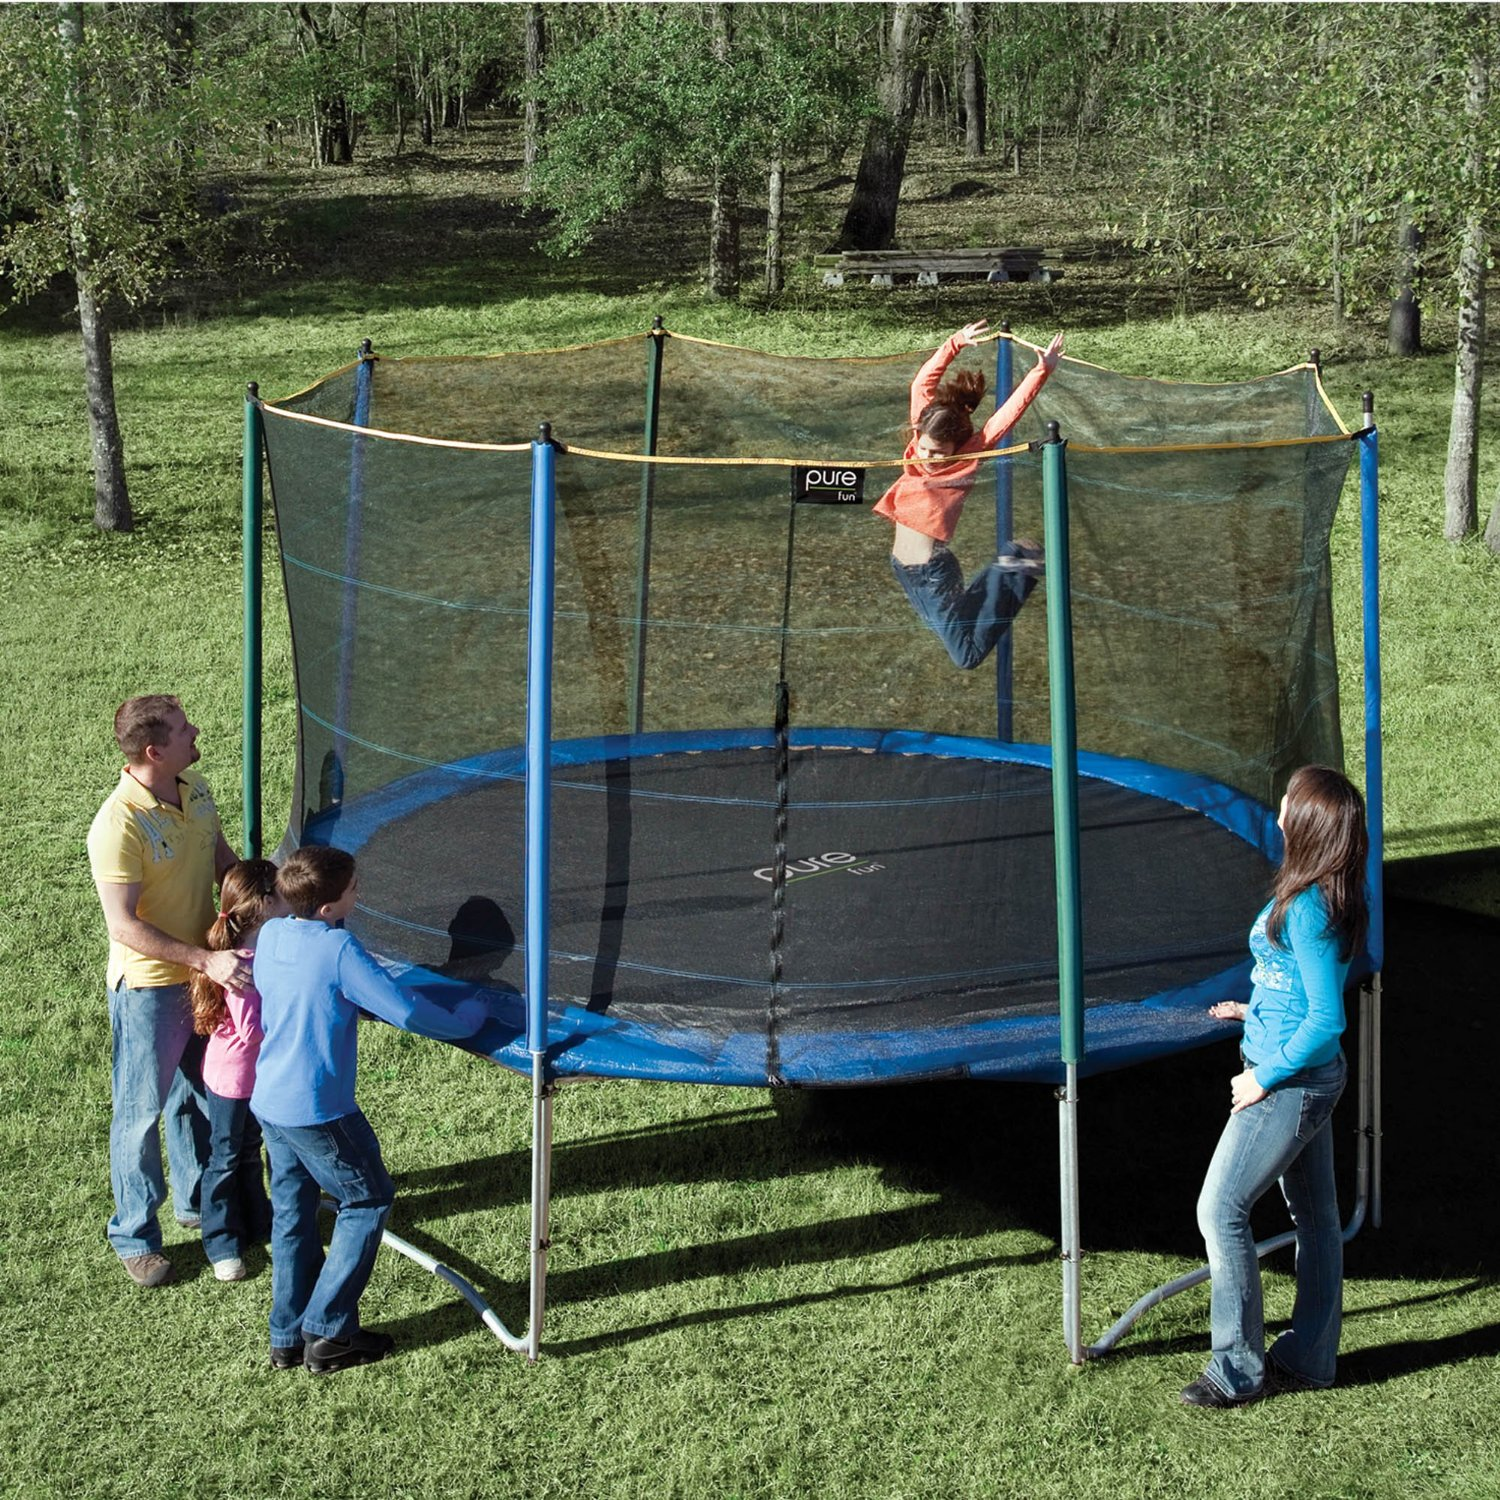 Top 10 Best Oval Trampoline With Safety Enclosures Our Top: Safety Minded Parents Speak Out